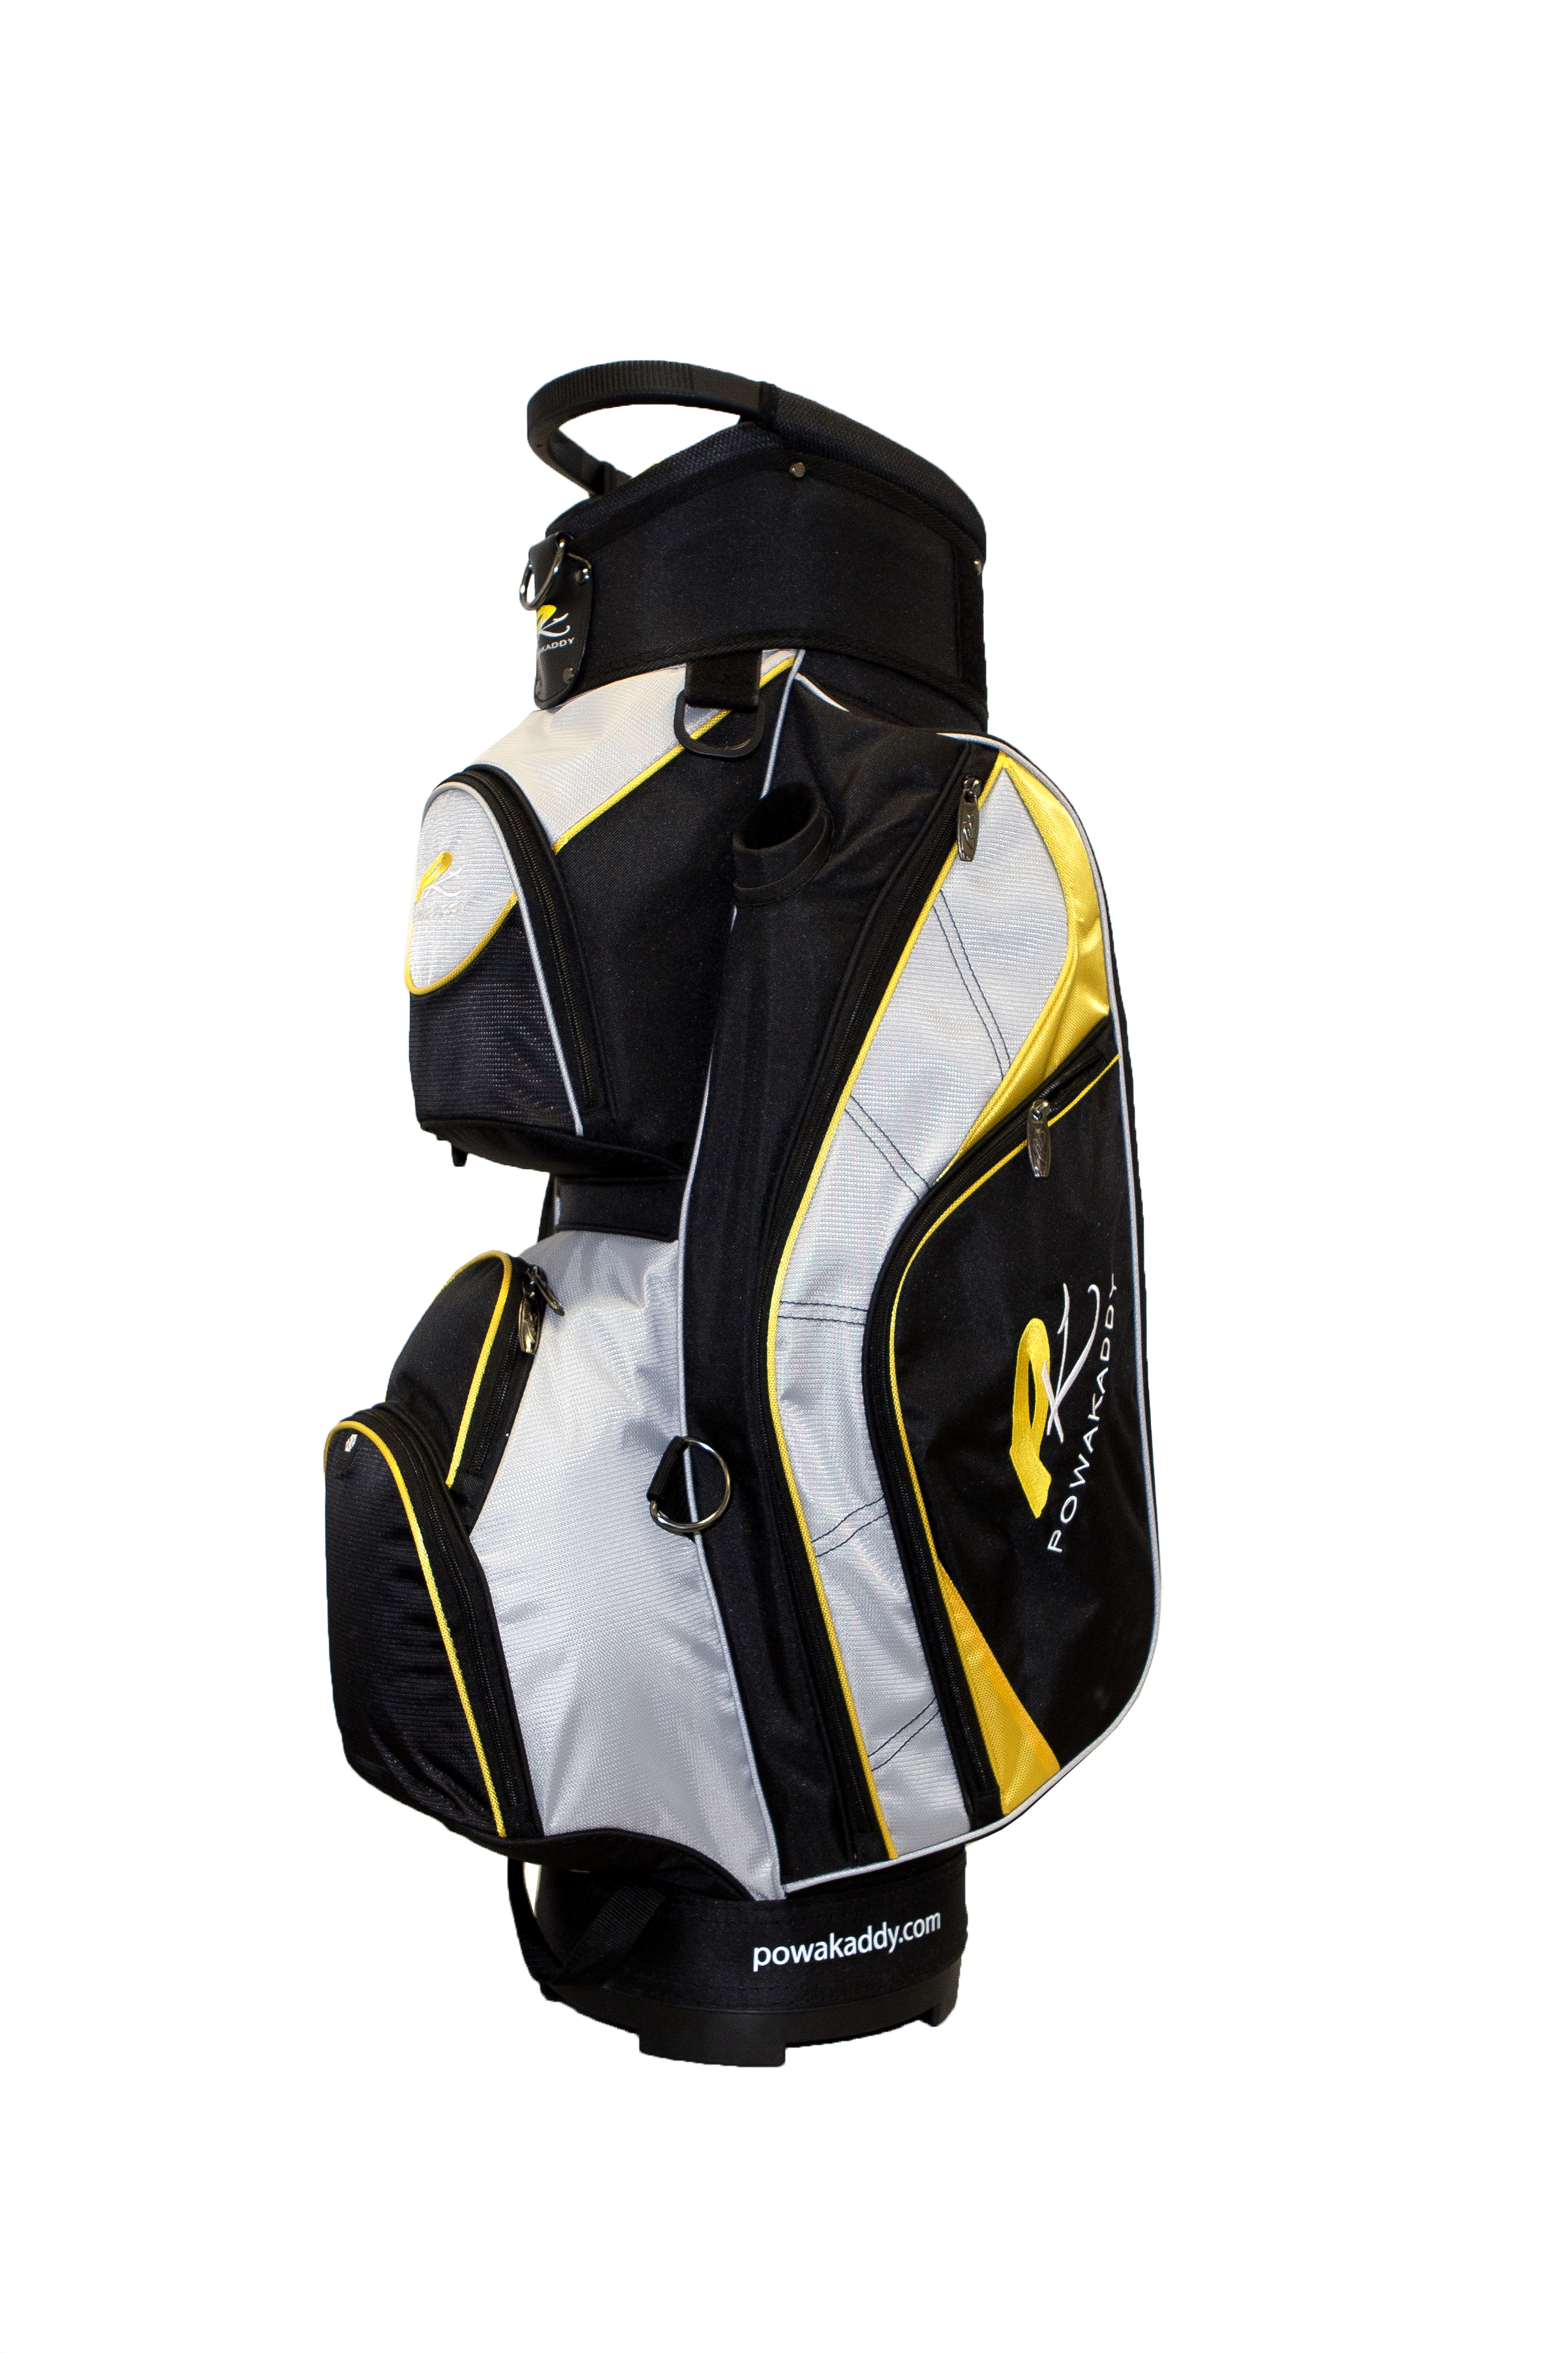 deluxe-bag-black-silver-yellow.jpg